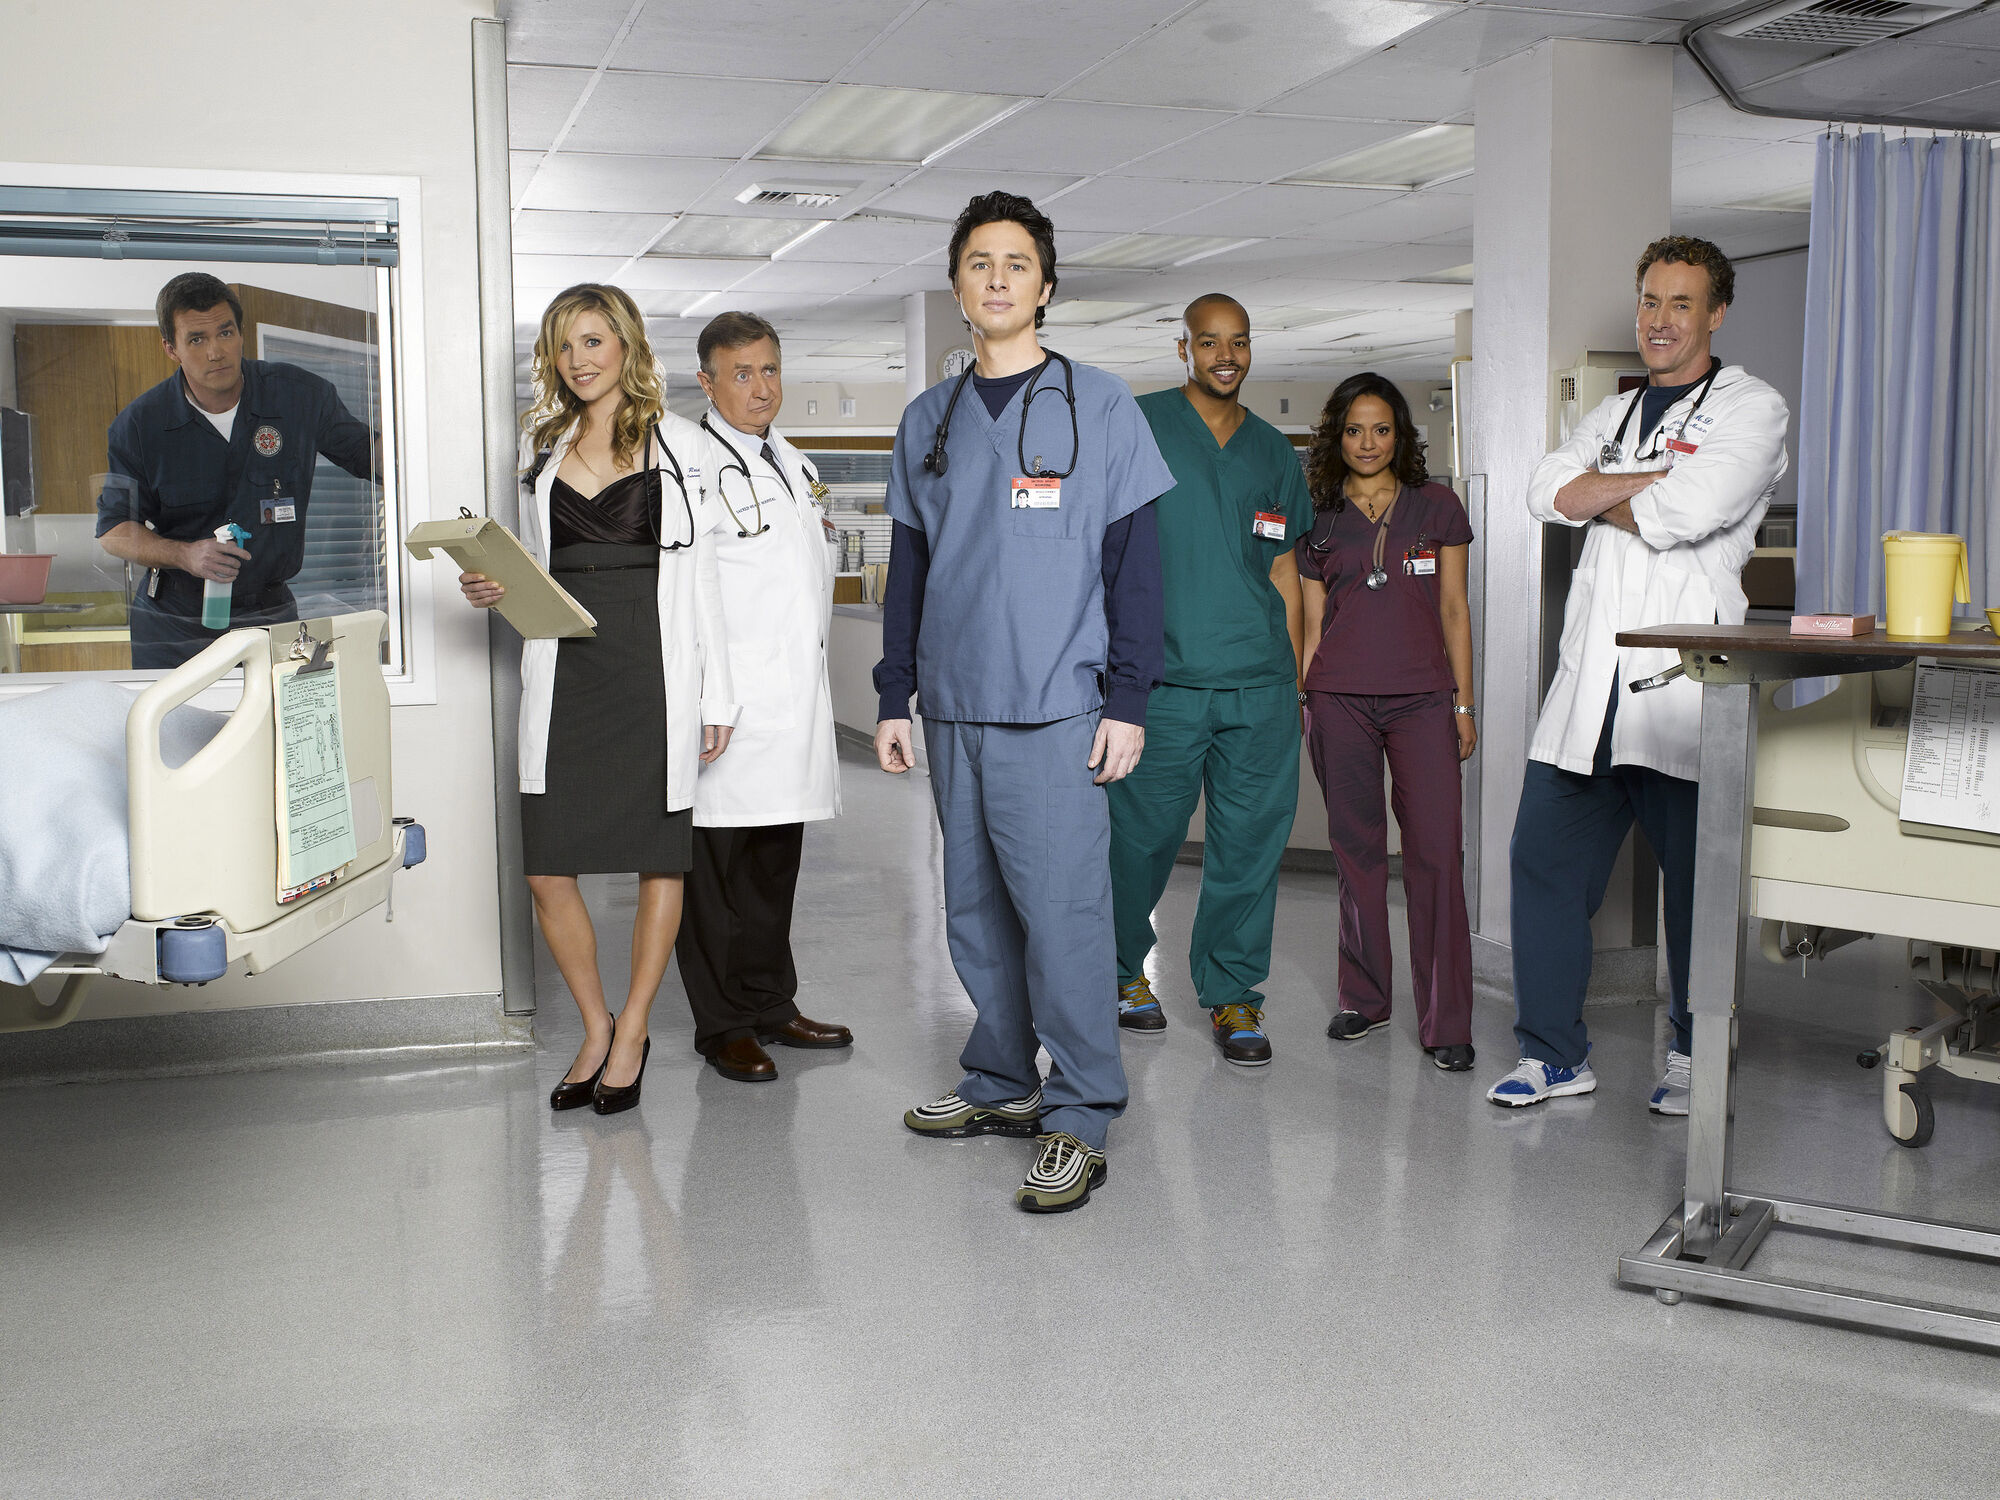 Scrubs images Scrubs Cast HD wallpaper and background photos (34321)